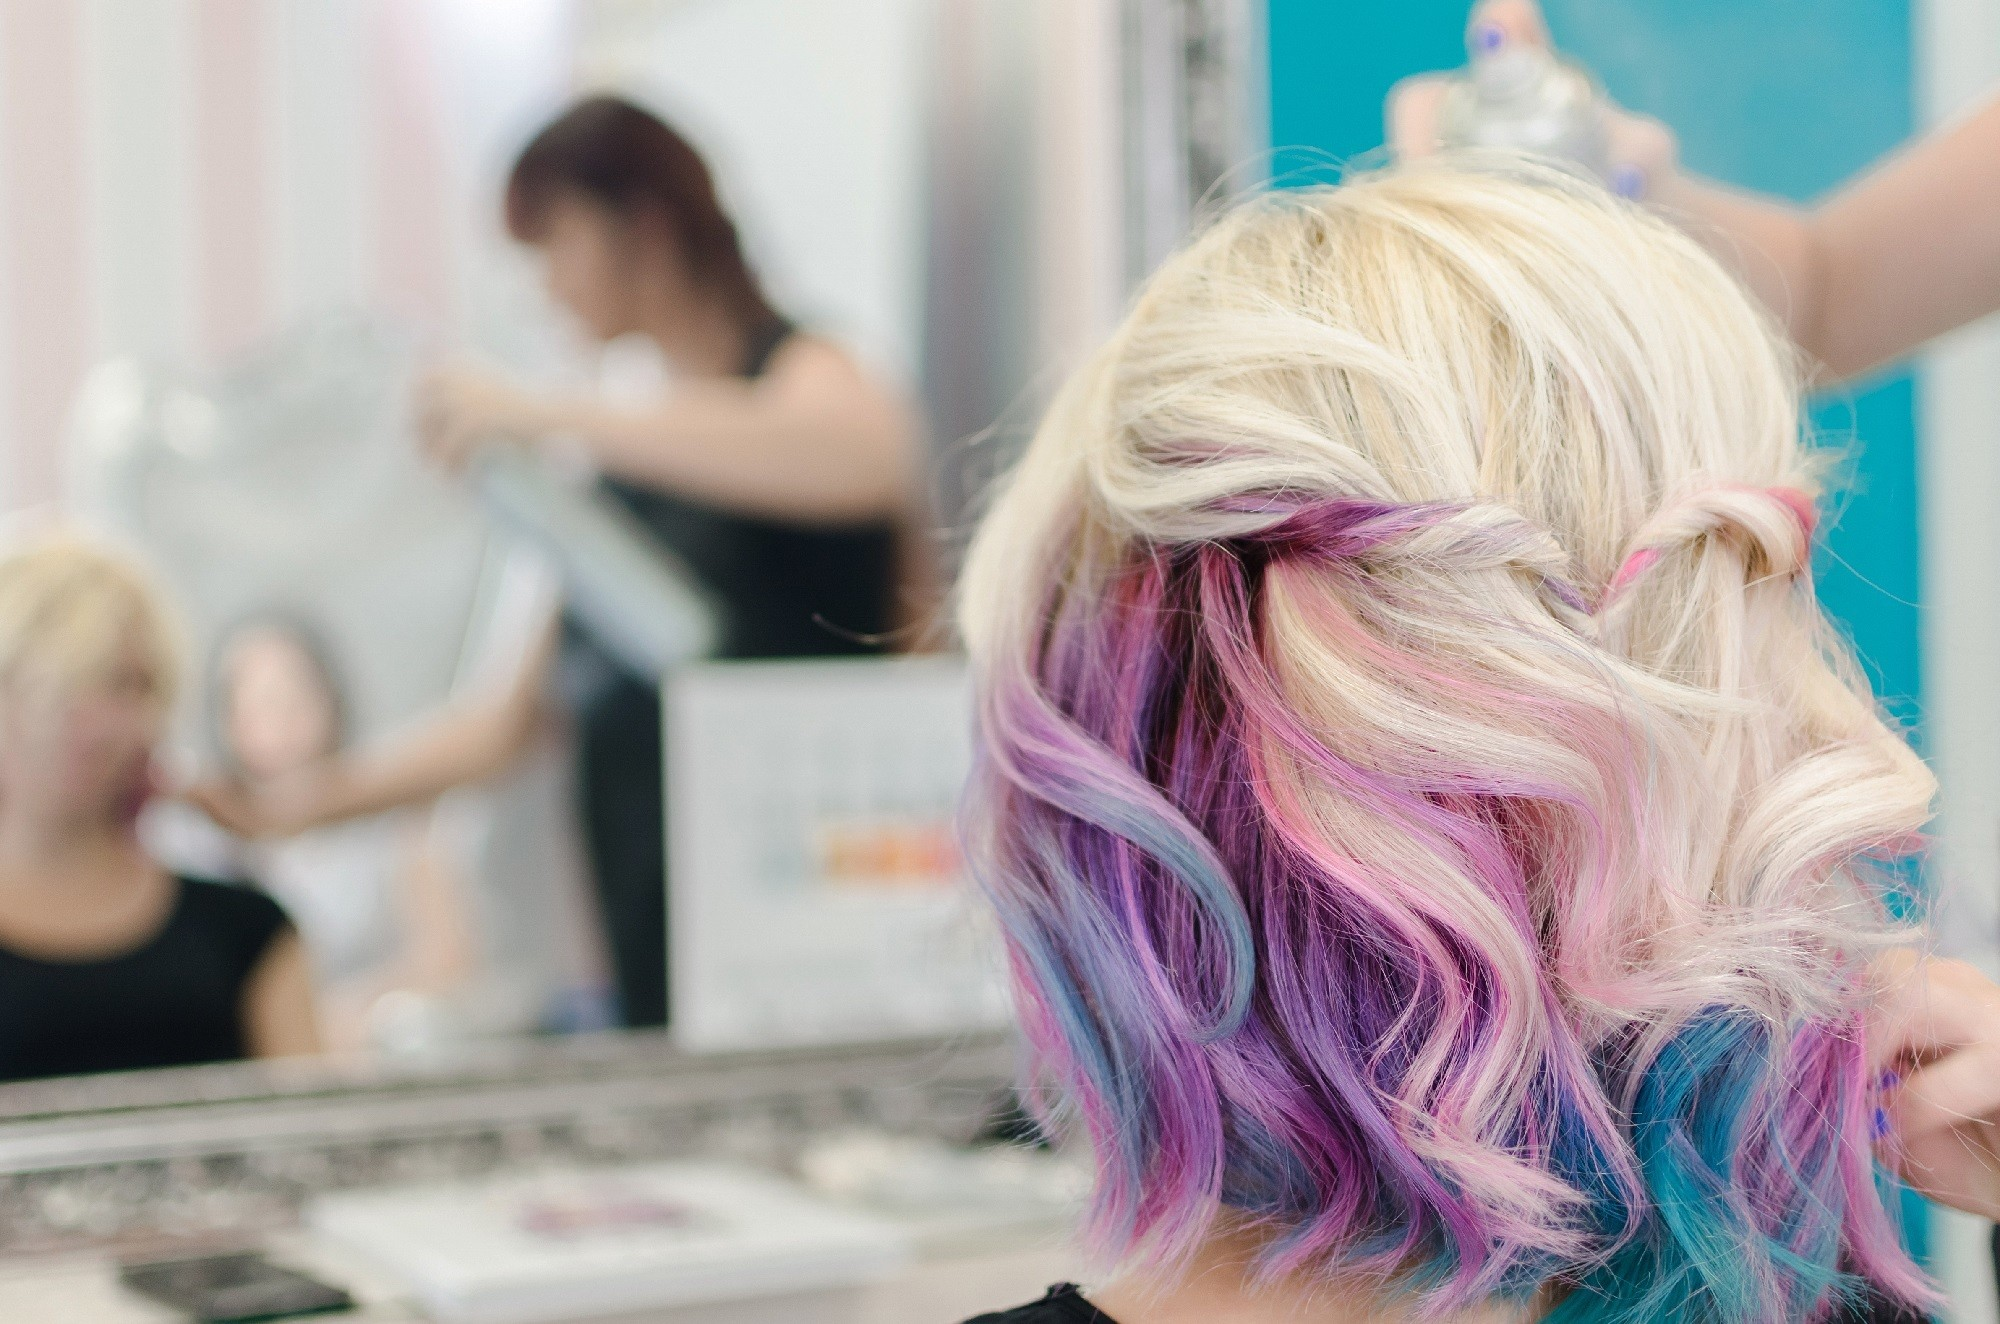 Unicorn hair - Tousled lob hidden unicorn Shutterstock